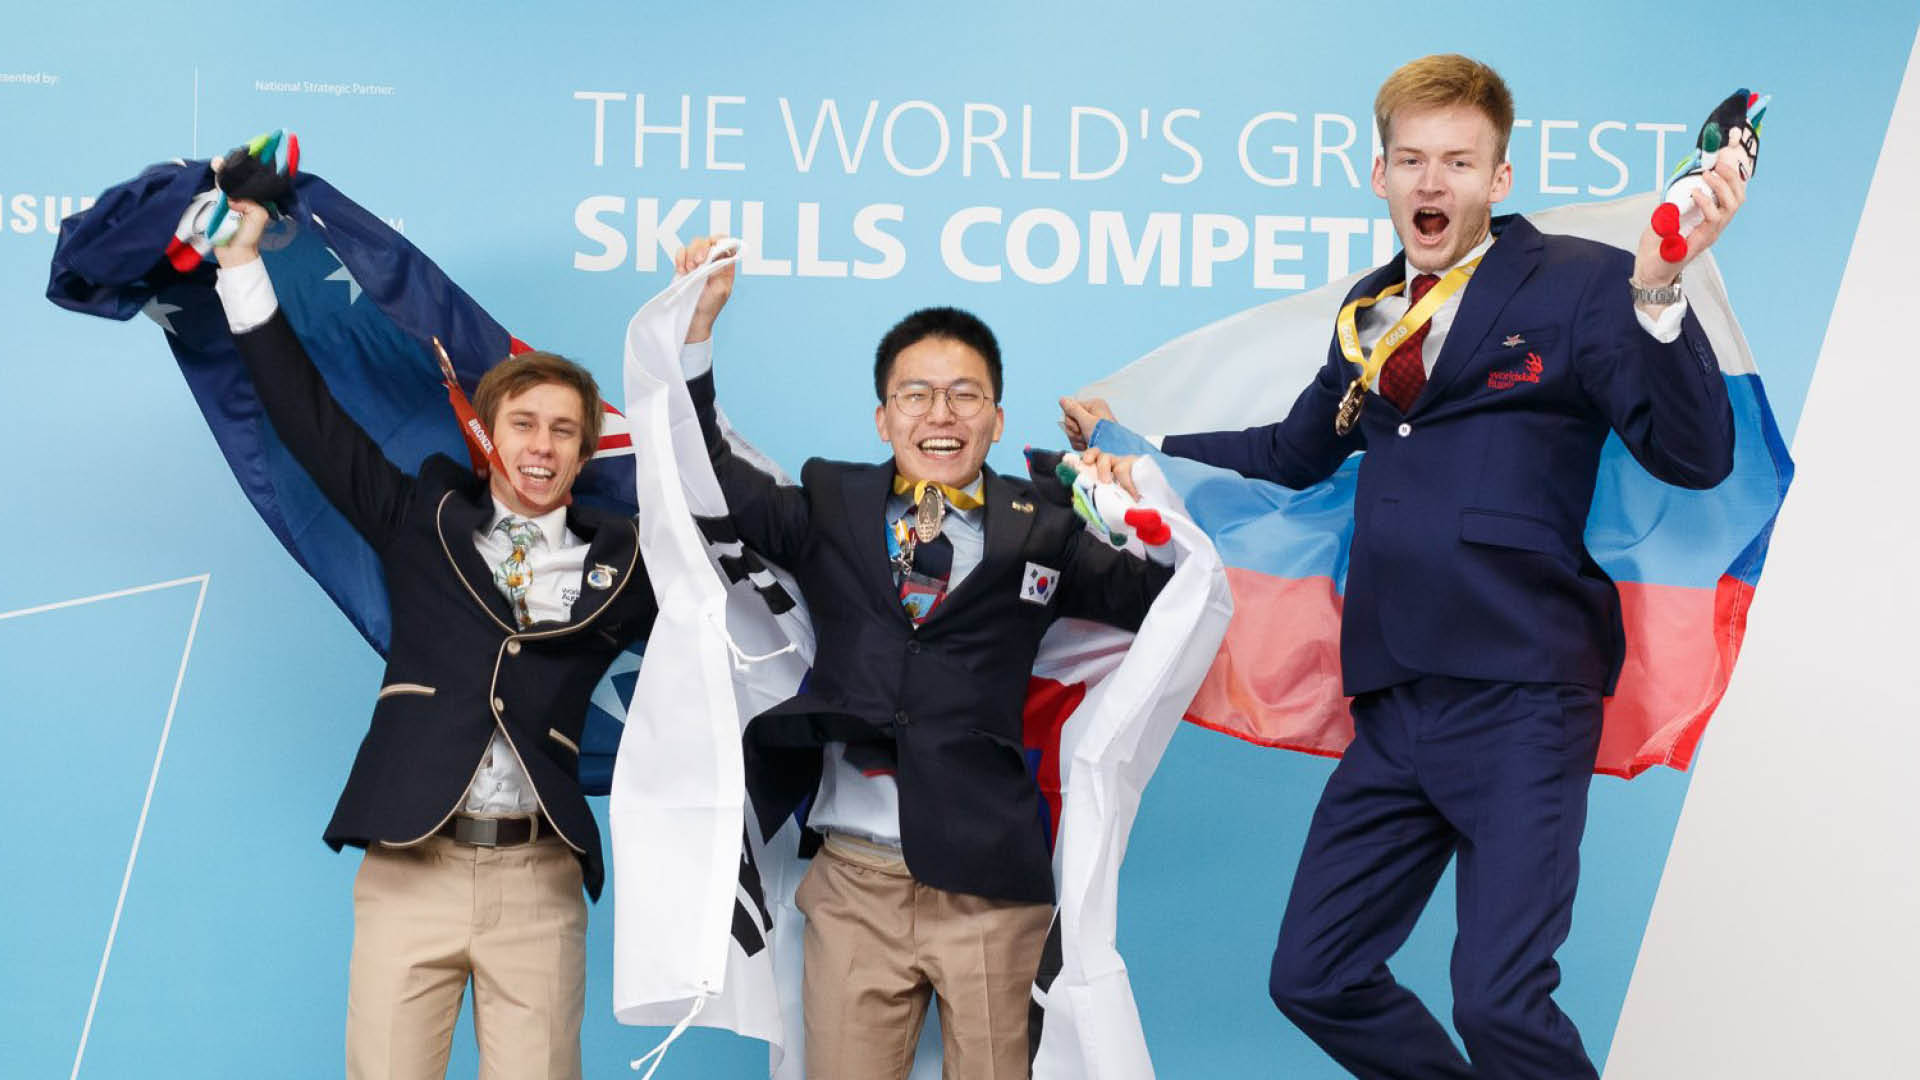 Patrick Brennan wins bronze at WorldSkills international competition